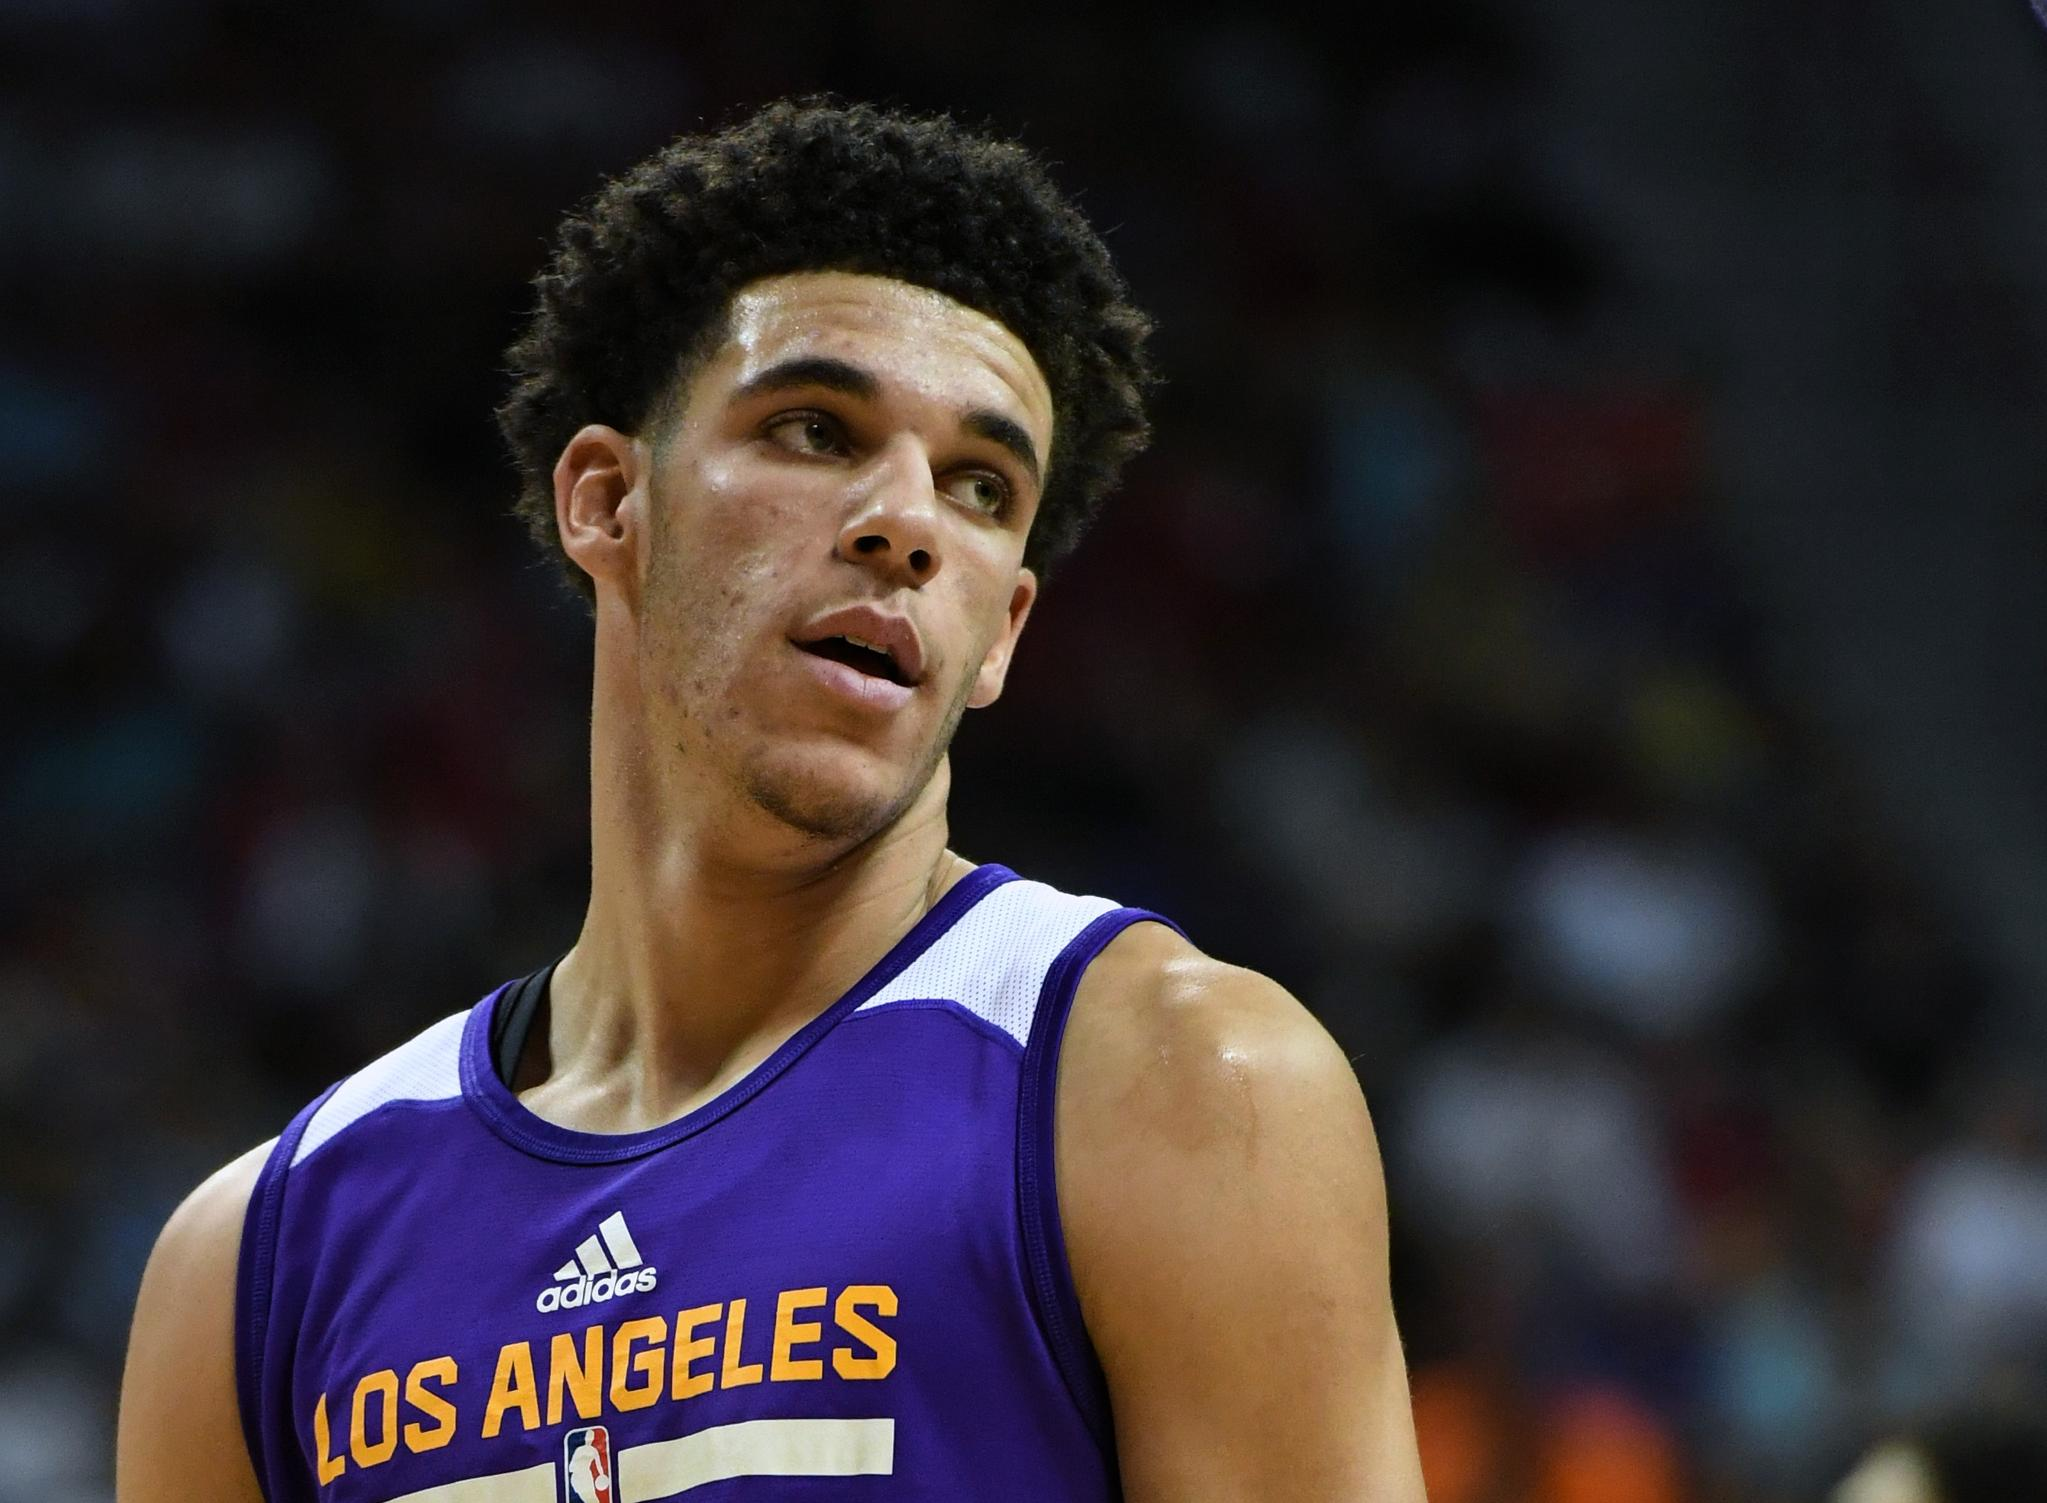 This Just In: Lonzo Ball is out for the Summer League final tonight due to a mild calf strain in his right leg. https://t.co/BcNYISLYAQ